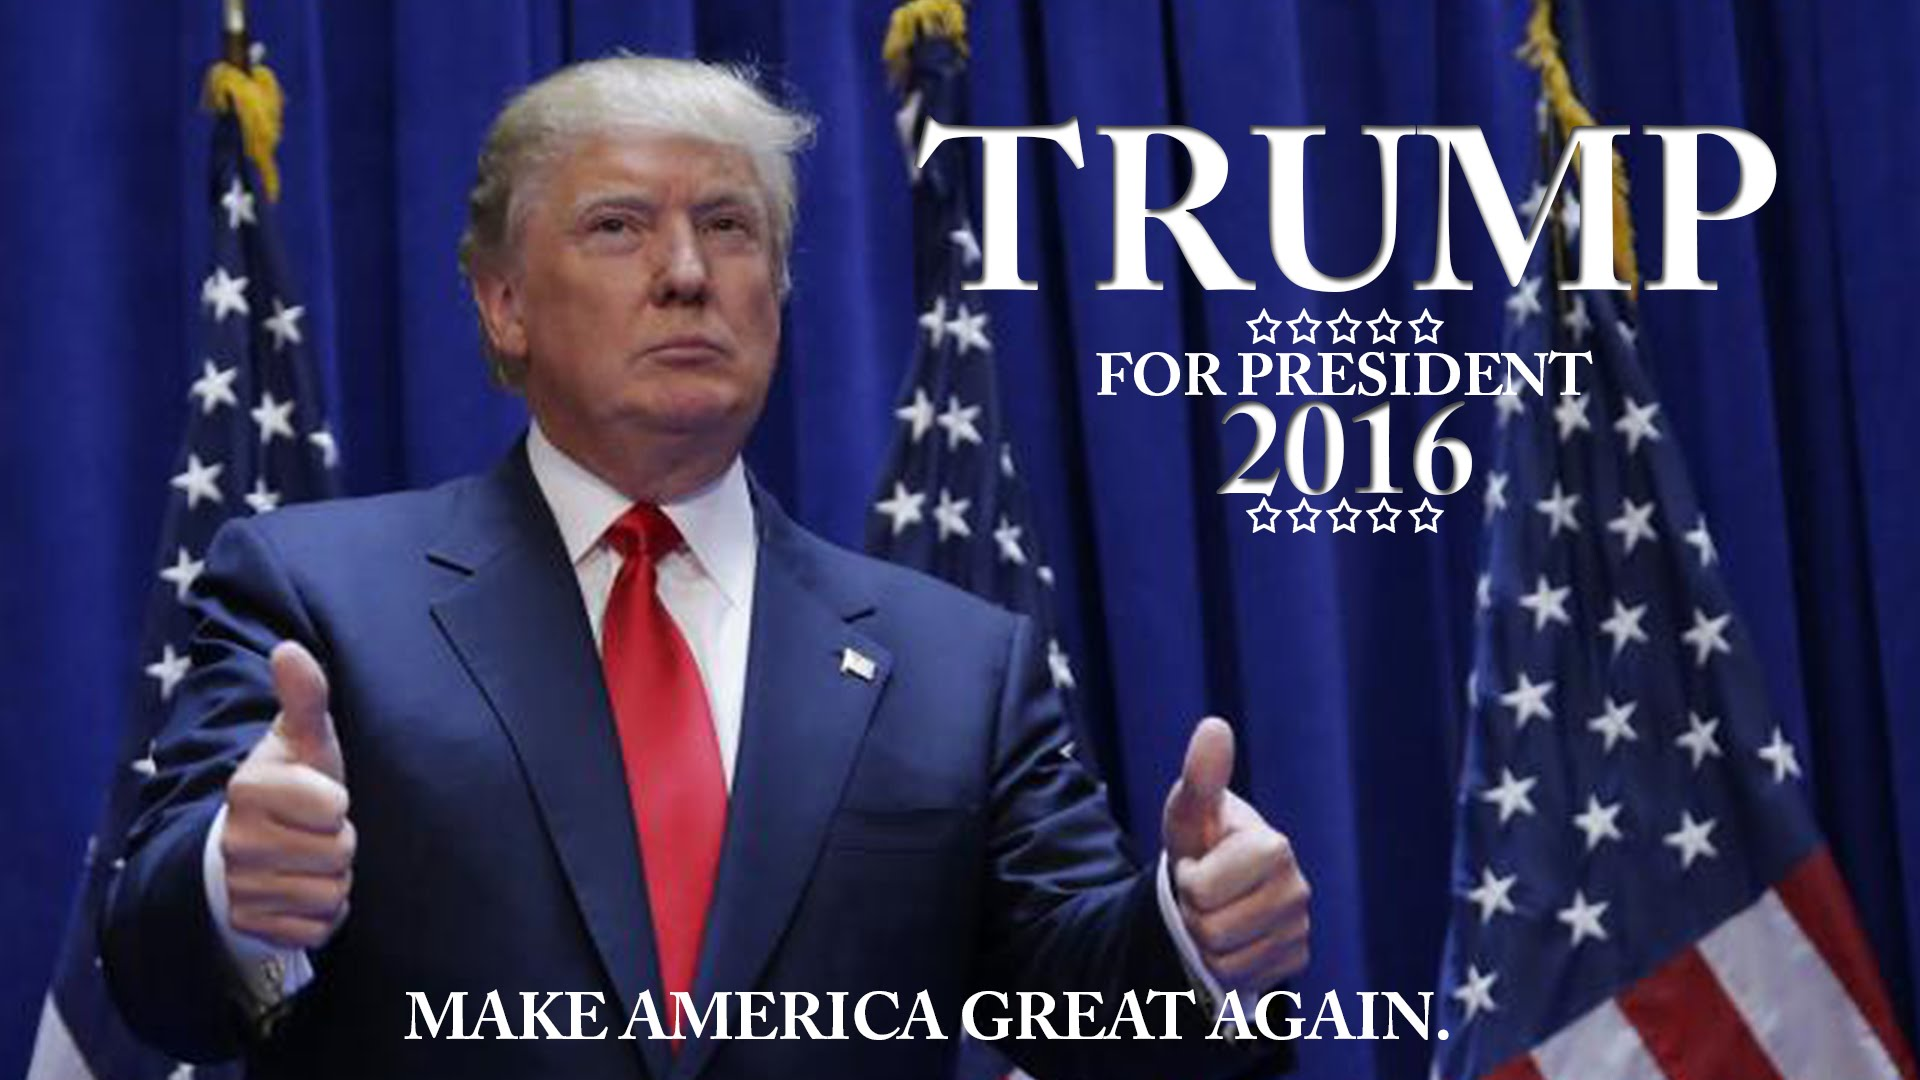 Donald Trump Wallpapers High Resolution And Quality Download